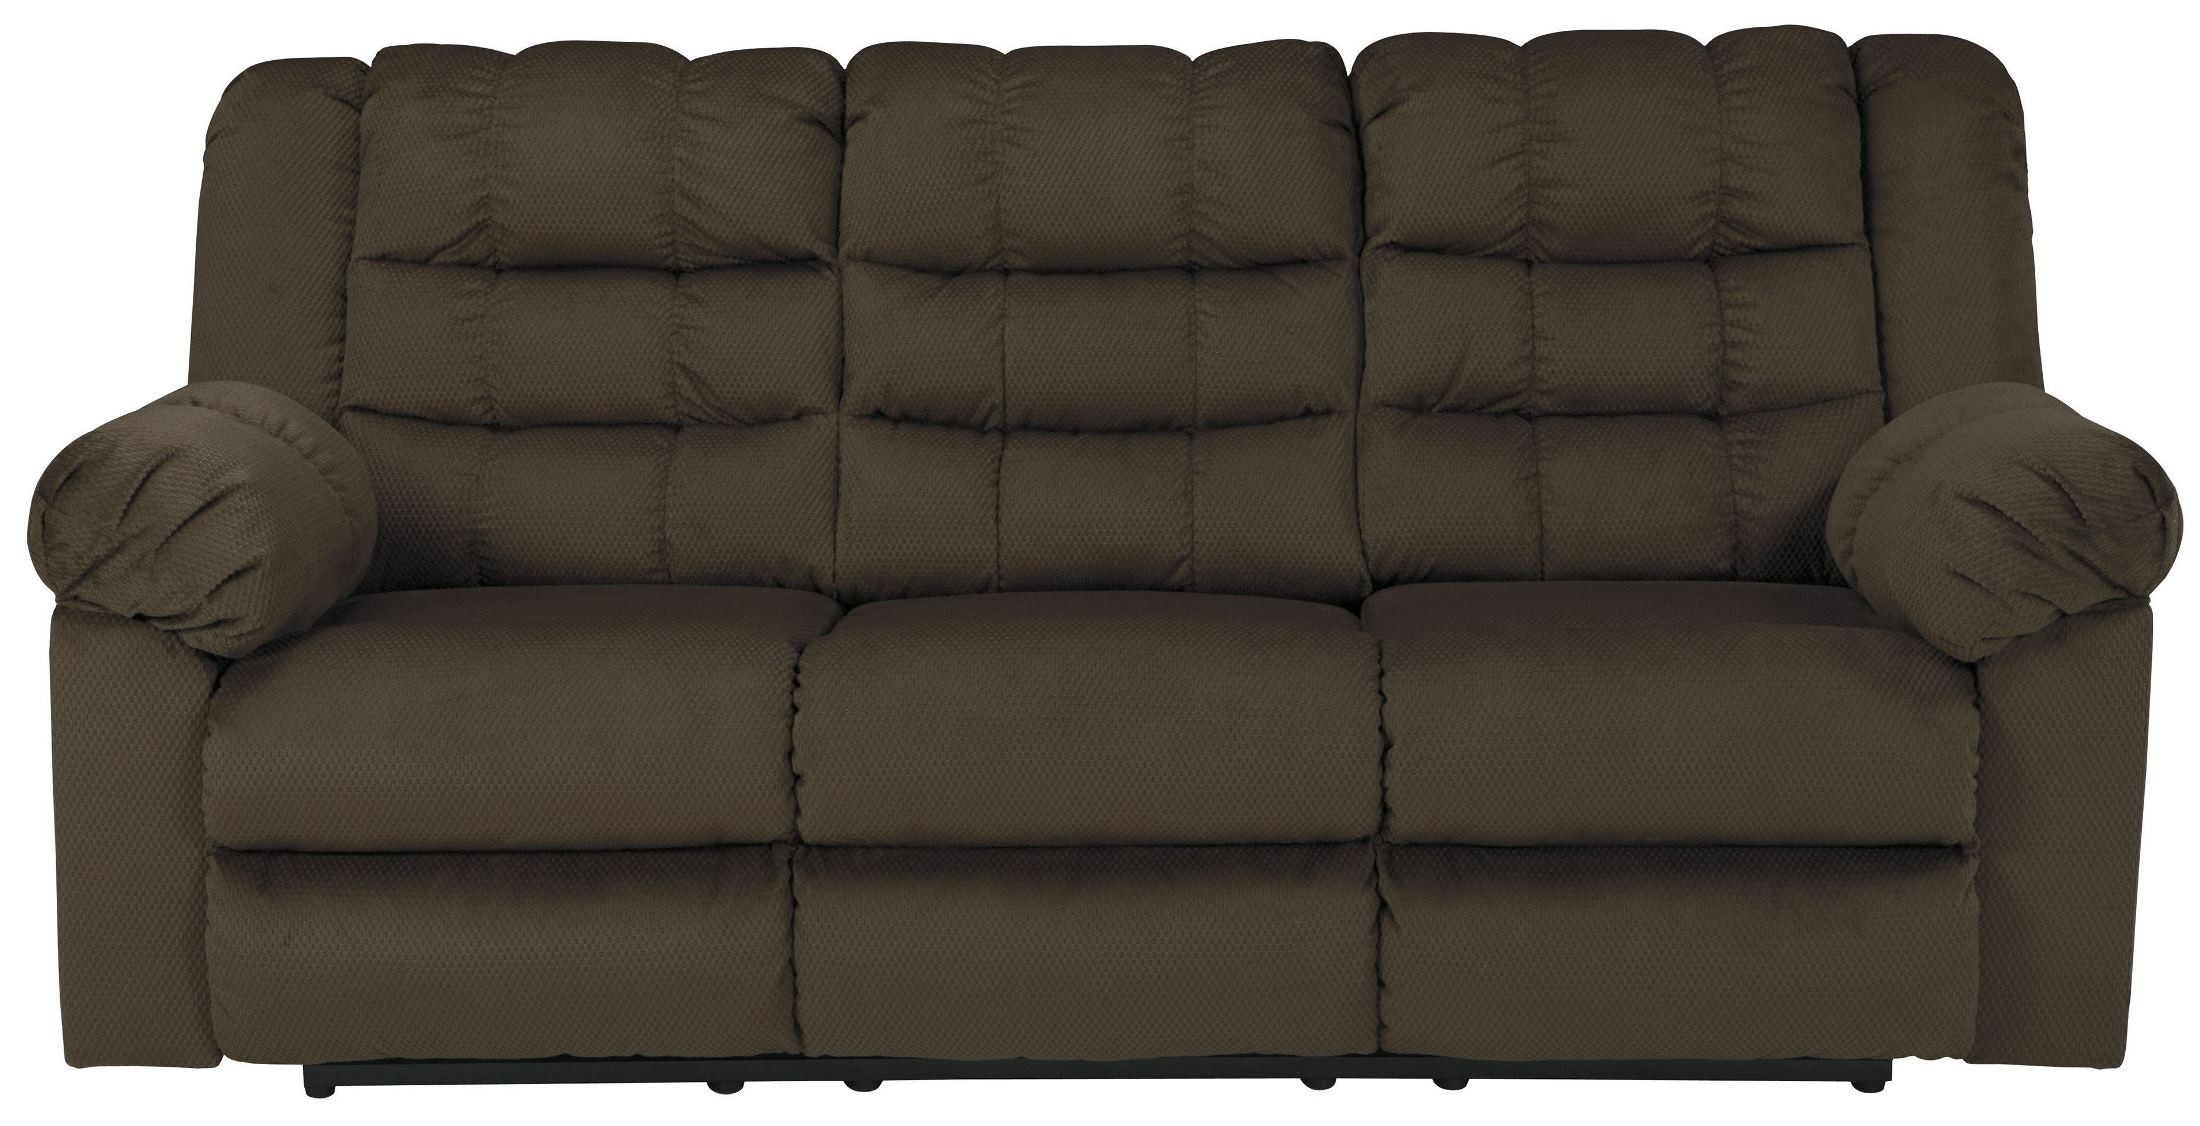 Mort Umber Reclining Sofa 2610488 Ashley